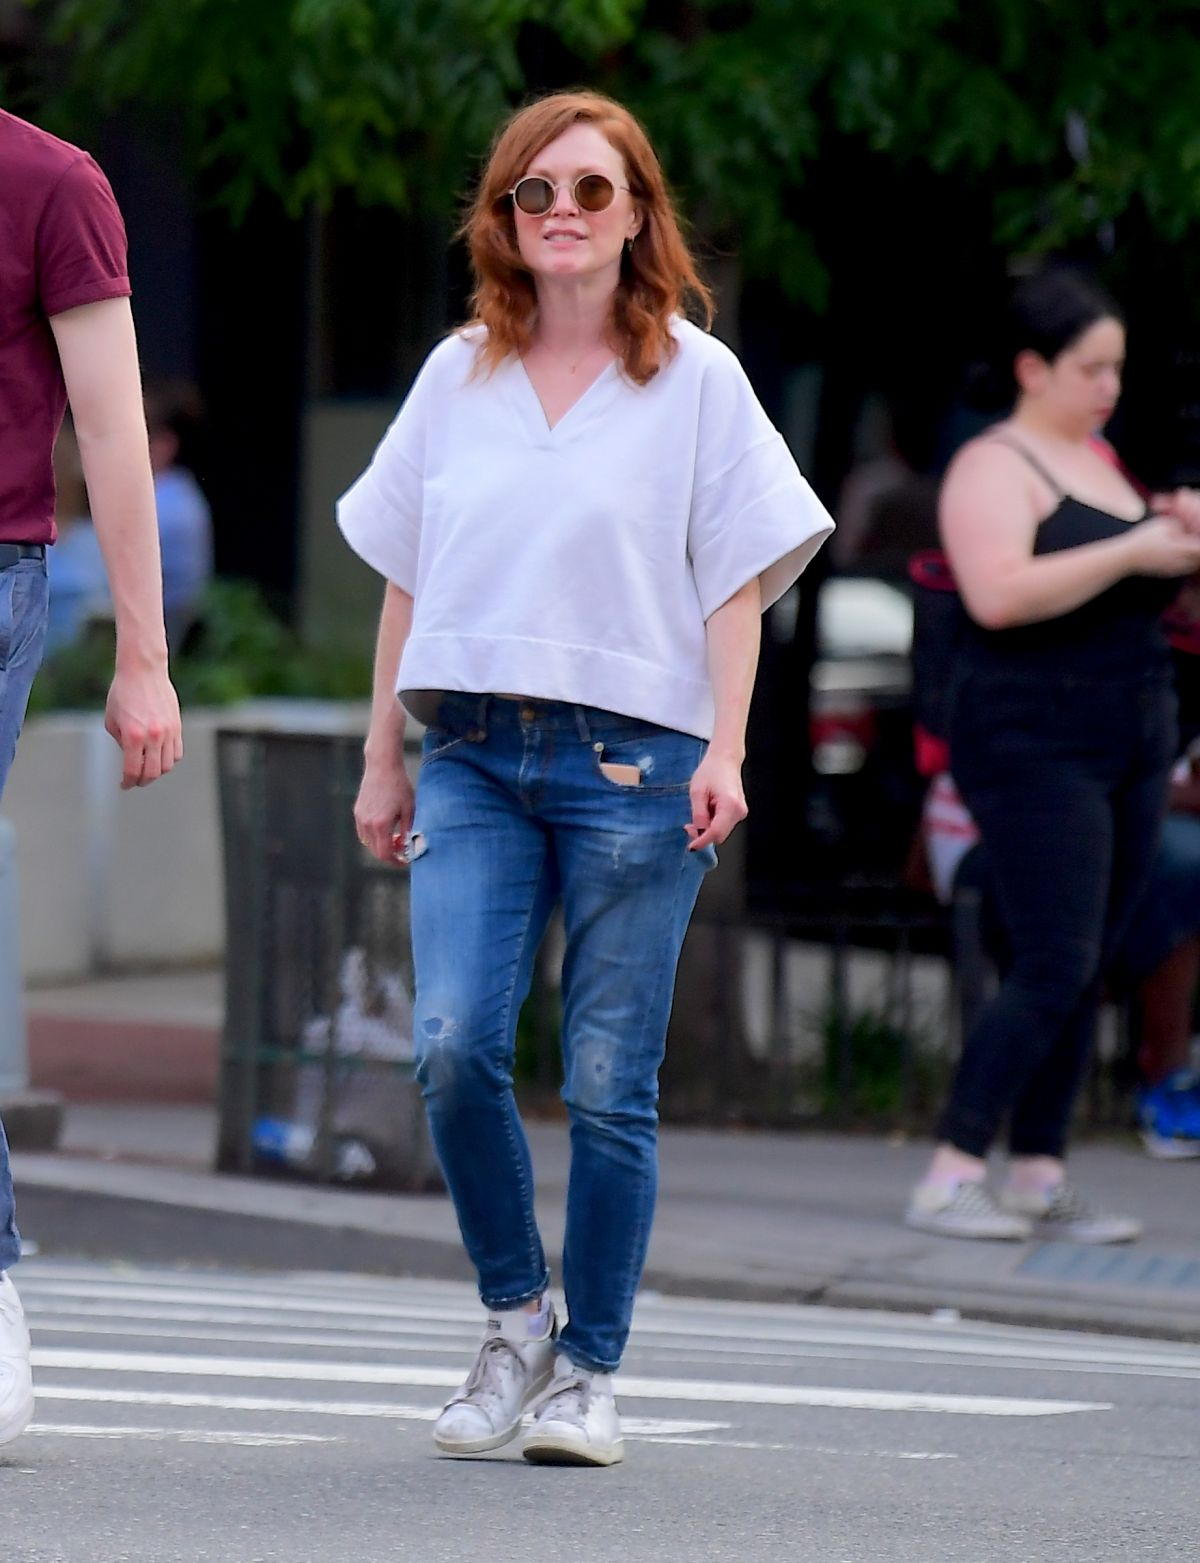 Julianne Moore and Her Daughter Liv Freundlich Out in New York, 06.23.2019 2